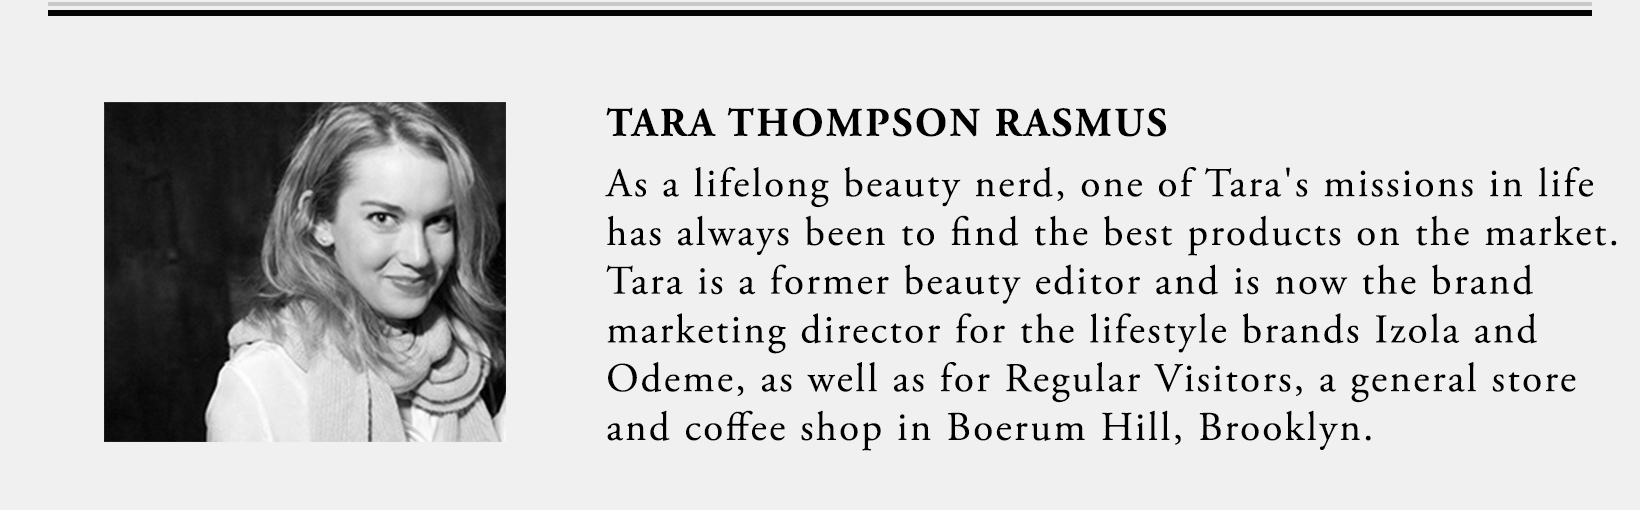 Tara Thompson Rasmus